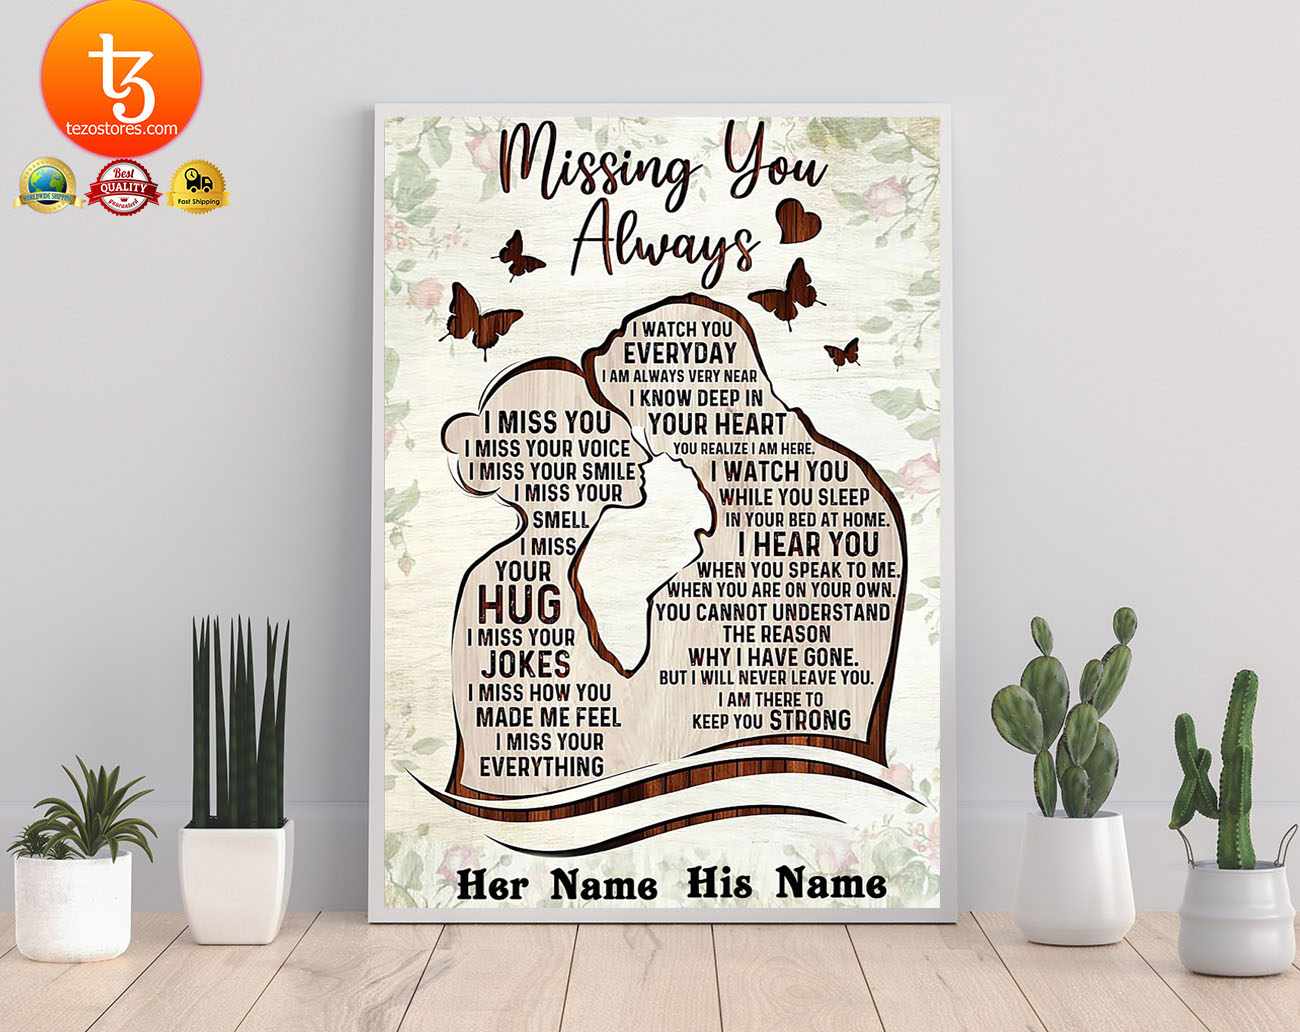 Missing you always I watch you everyday custom personalized name poster 23